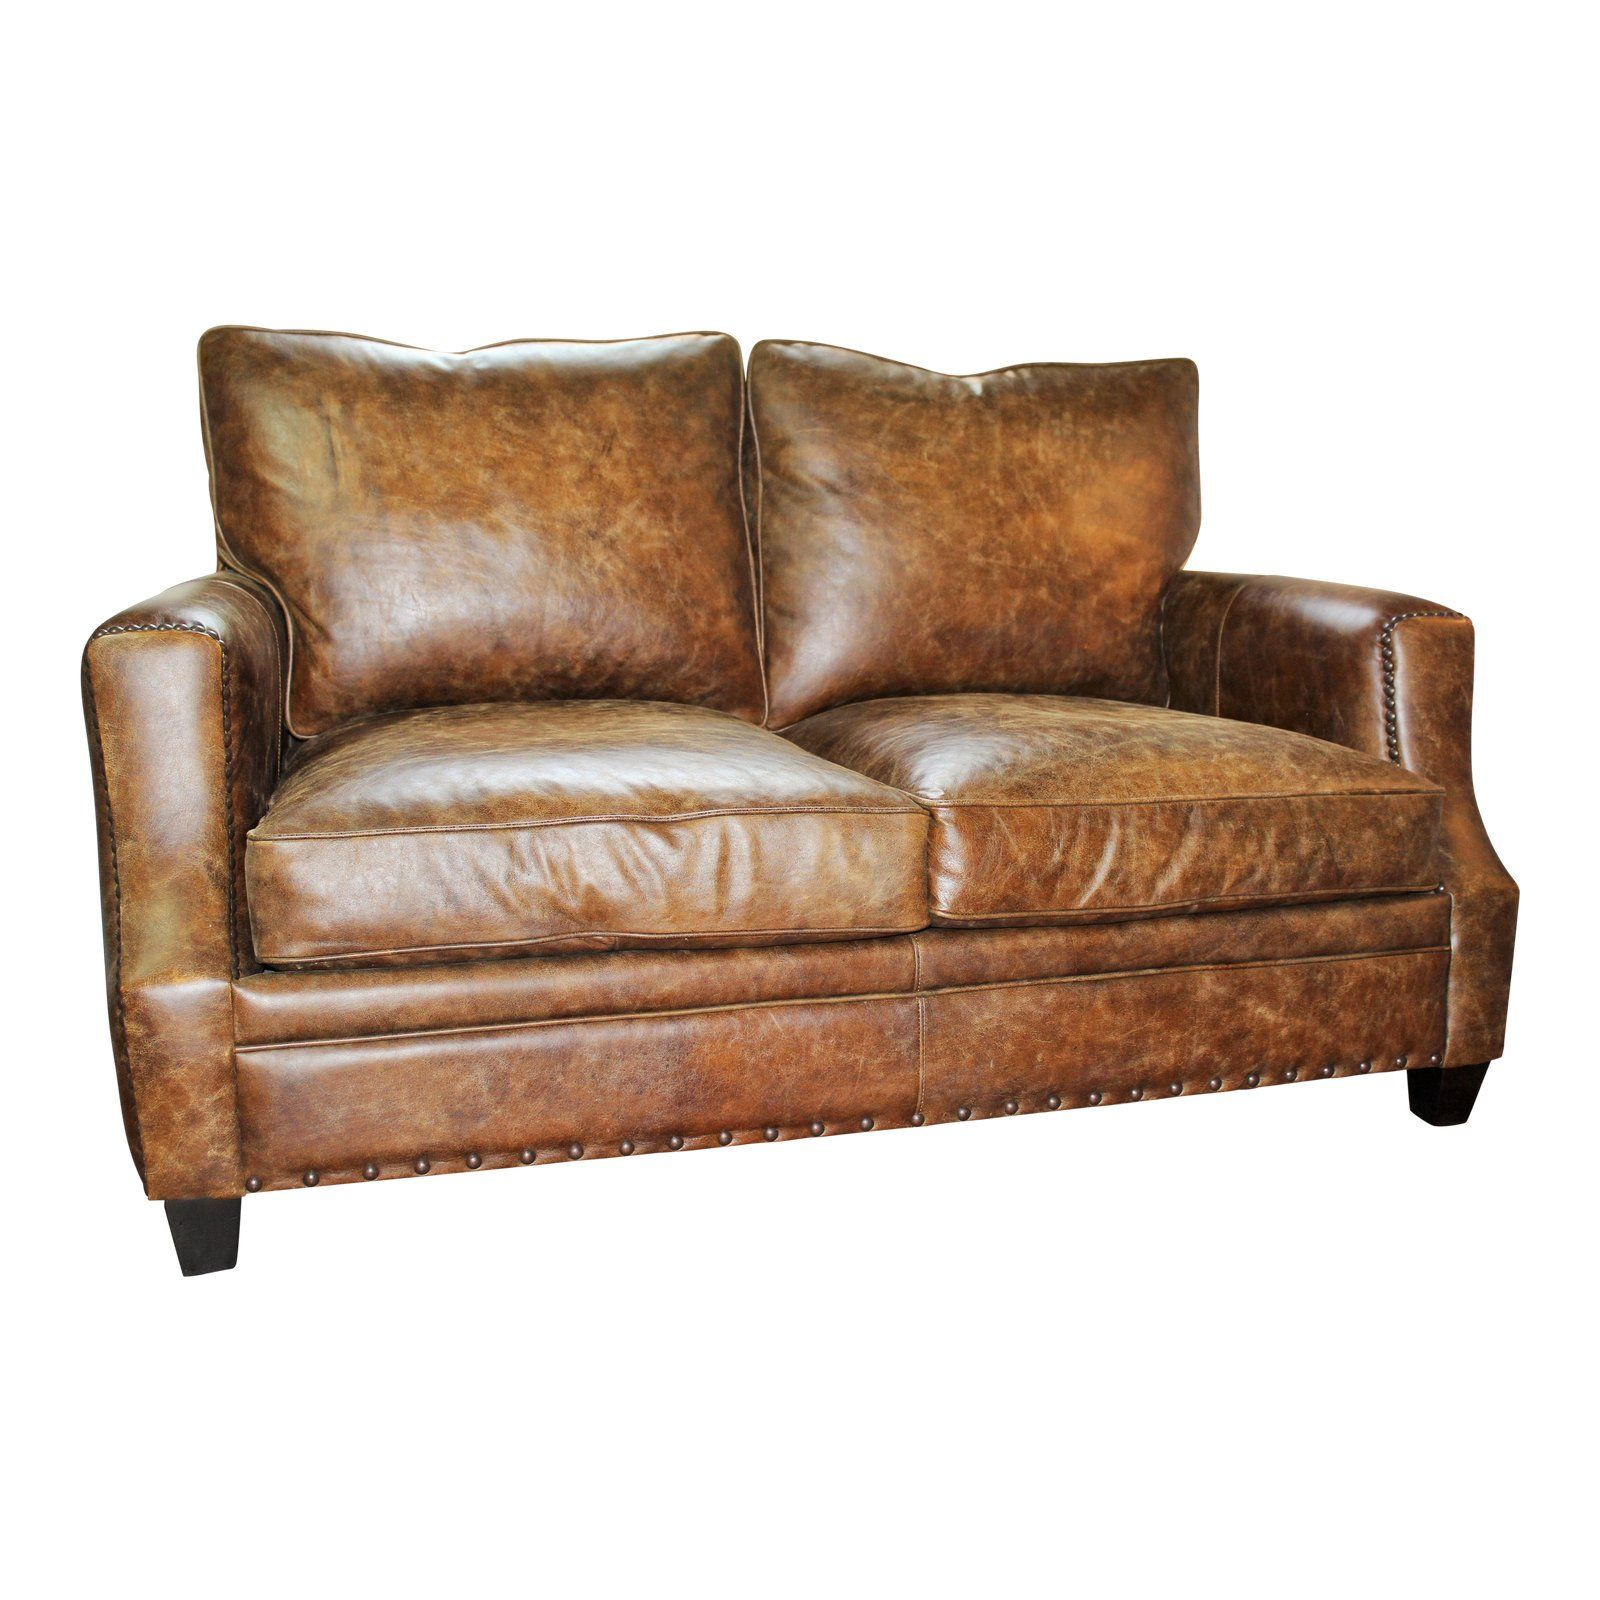 Surprising Bernhardt All Leather Loveseat In 2019 Wish List Leather Home Remodeling Inspirations Basidirectenergyitoicom